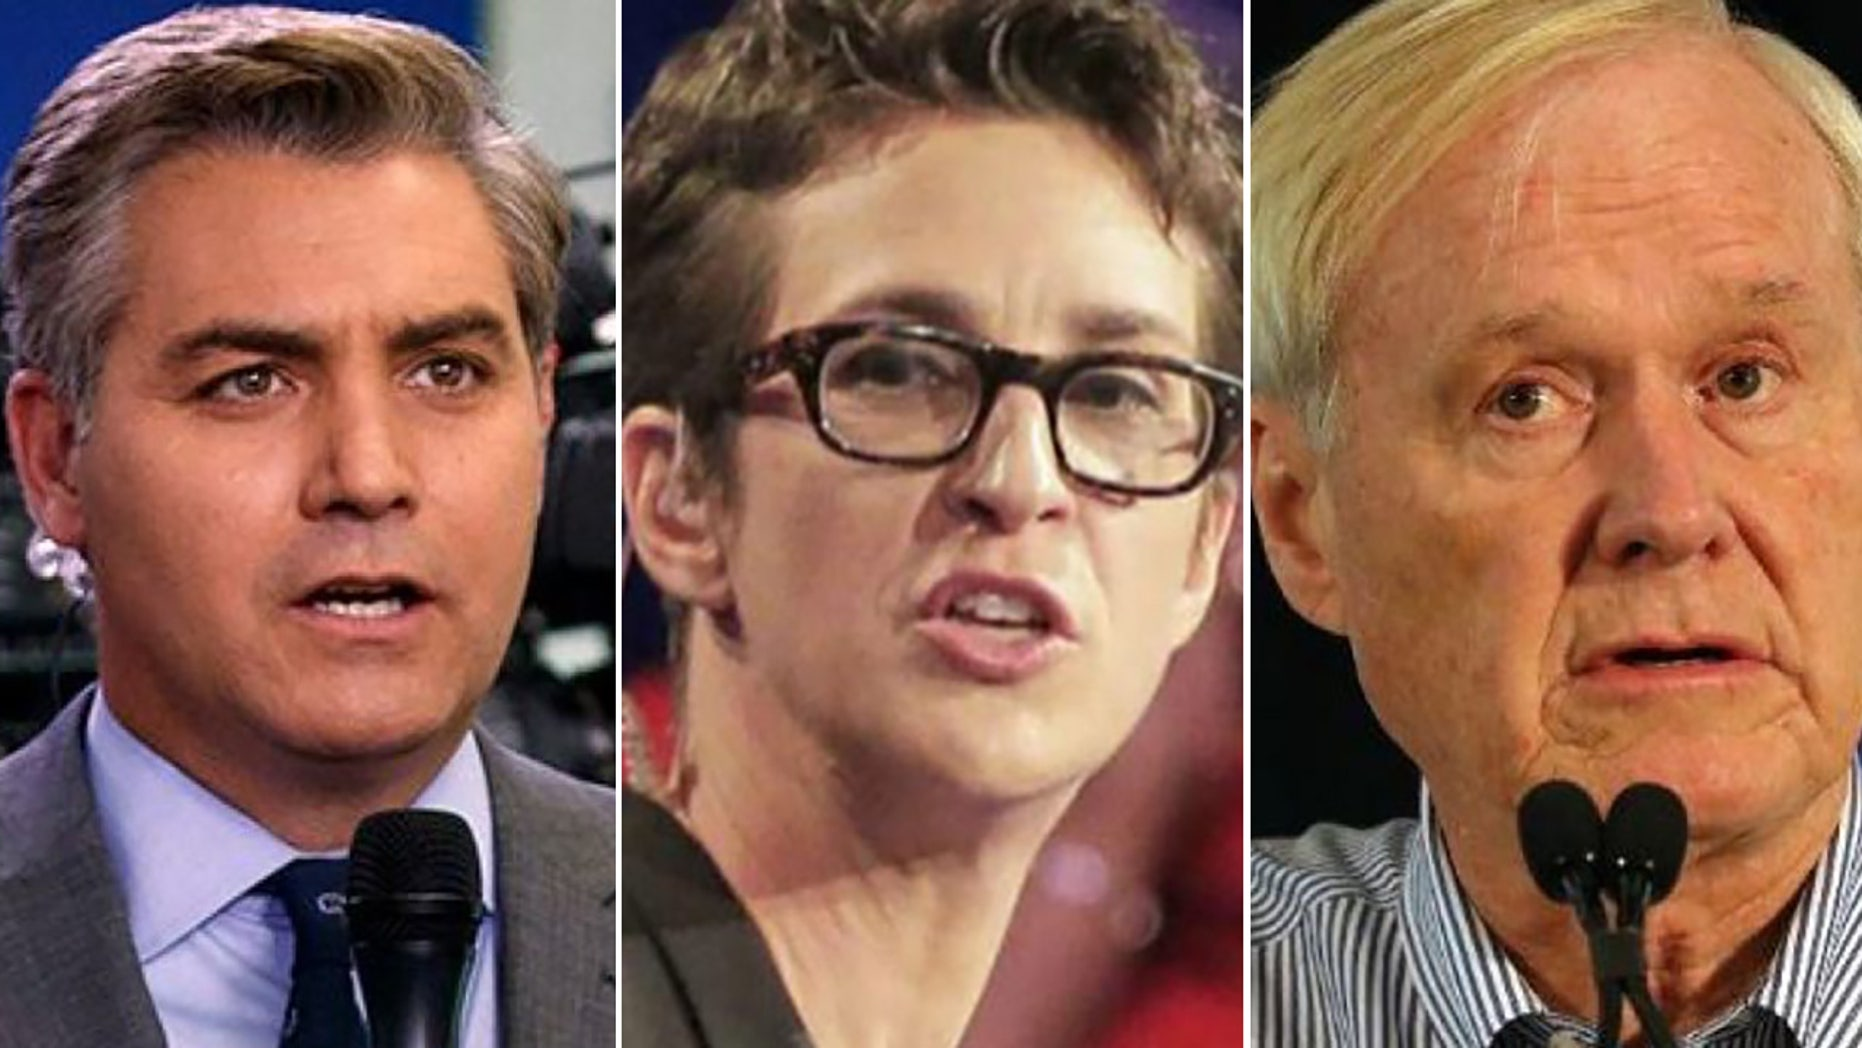 Mainstream media figures Jim Acosta of CNN, left, and Rachel Maddow and Chris Matthews of MSNBC all seemed stunned as Special Counsel Robert Mueller's Russia investigation wrapped up Friday with no more indictments planned.